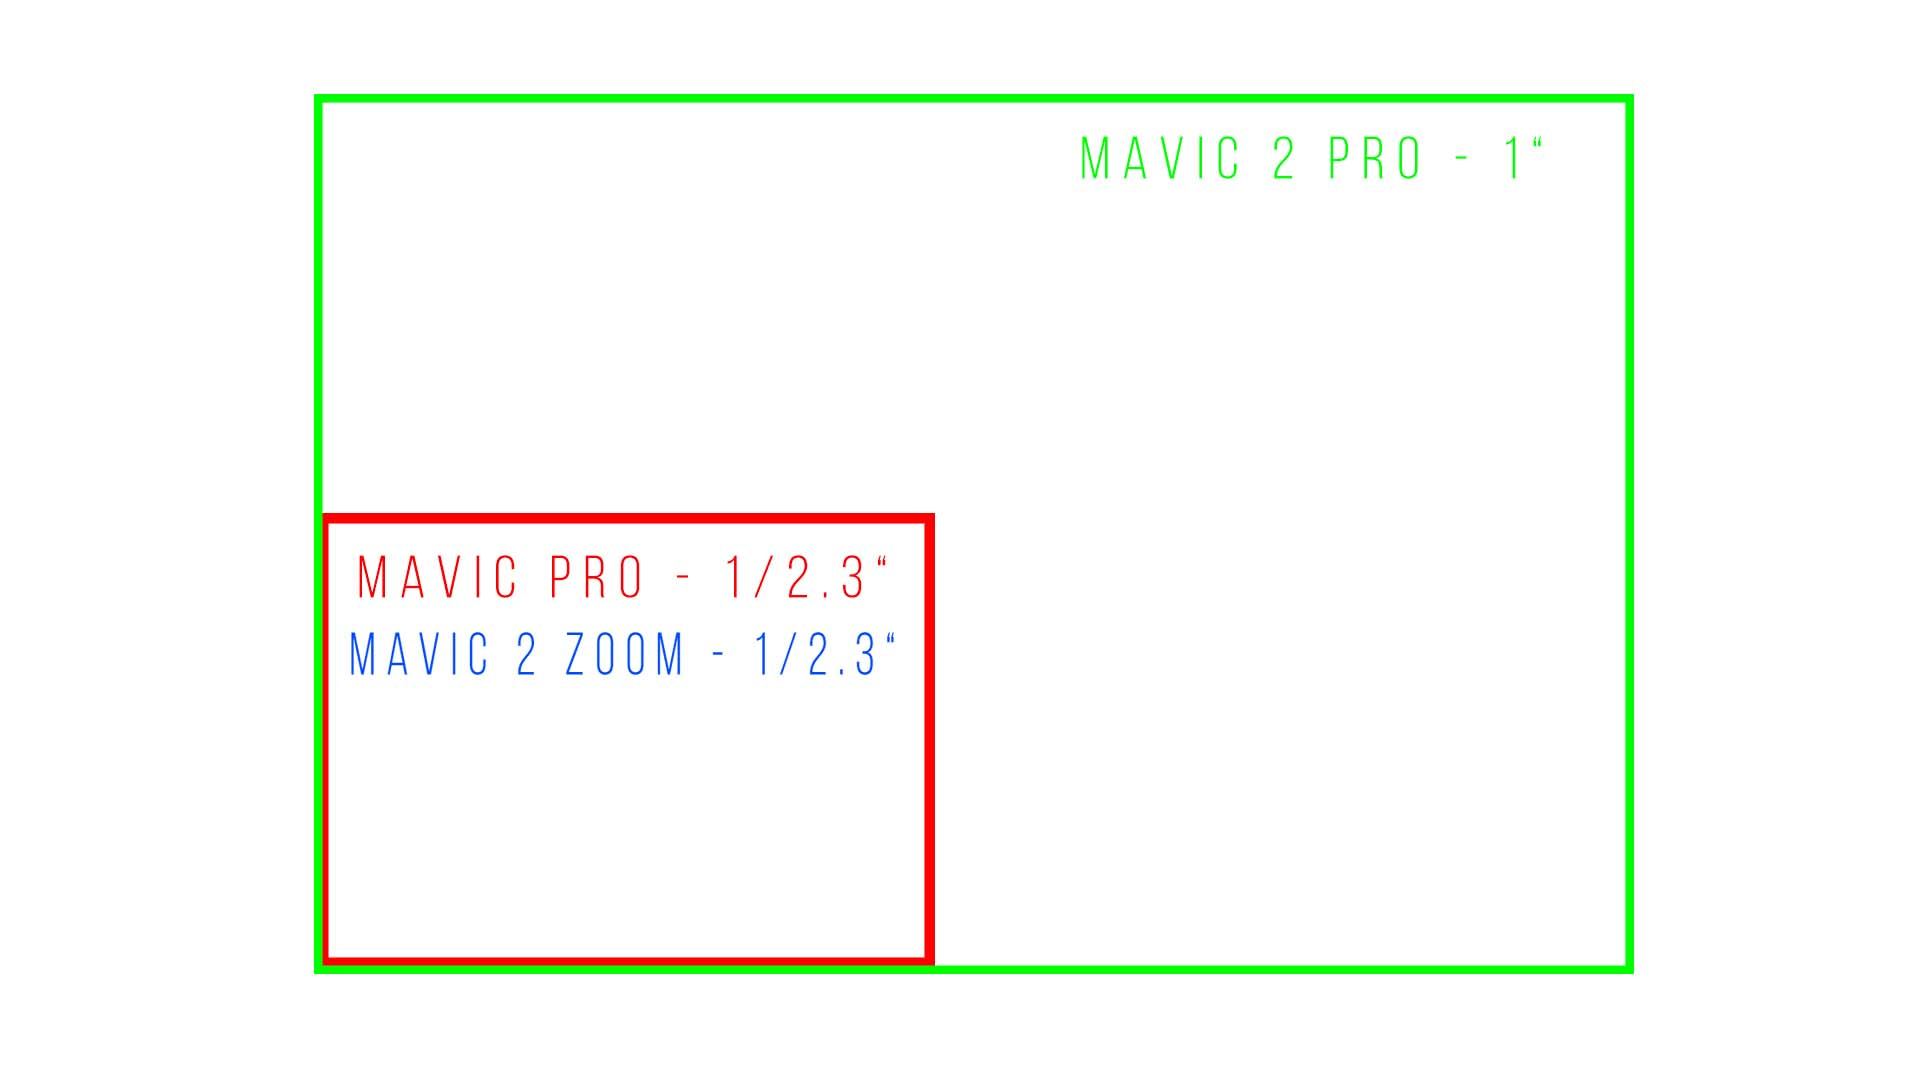 mavic pro vs mavic 2 pro, is it worth to buy mavic 2, is it worth upgrading to mavic 2, mavic 2 pro sensor vs mavic pro sensor, sensor mavic 2 pro, mavic 2 pro vs mavic 2 zoom, mavic 2 sensor